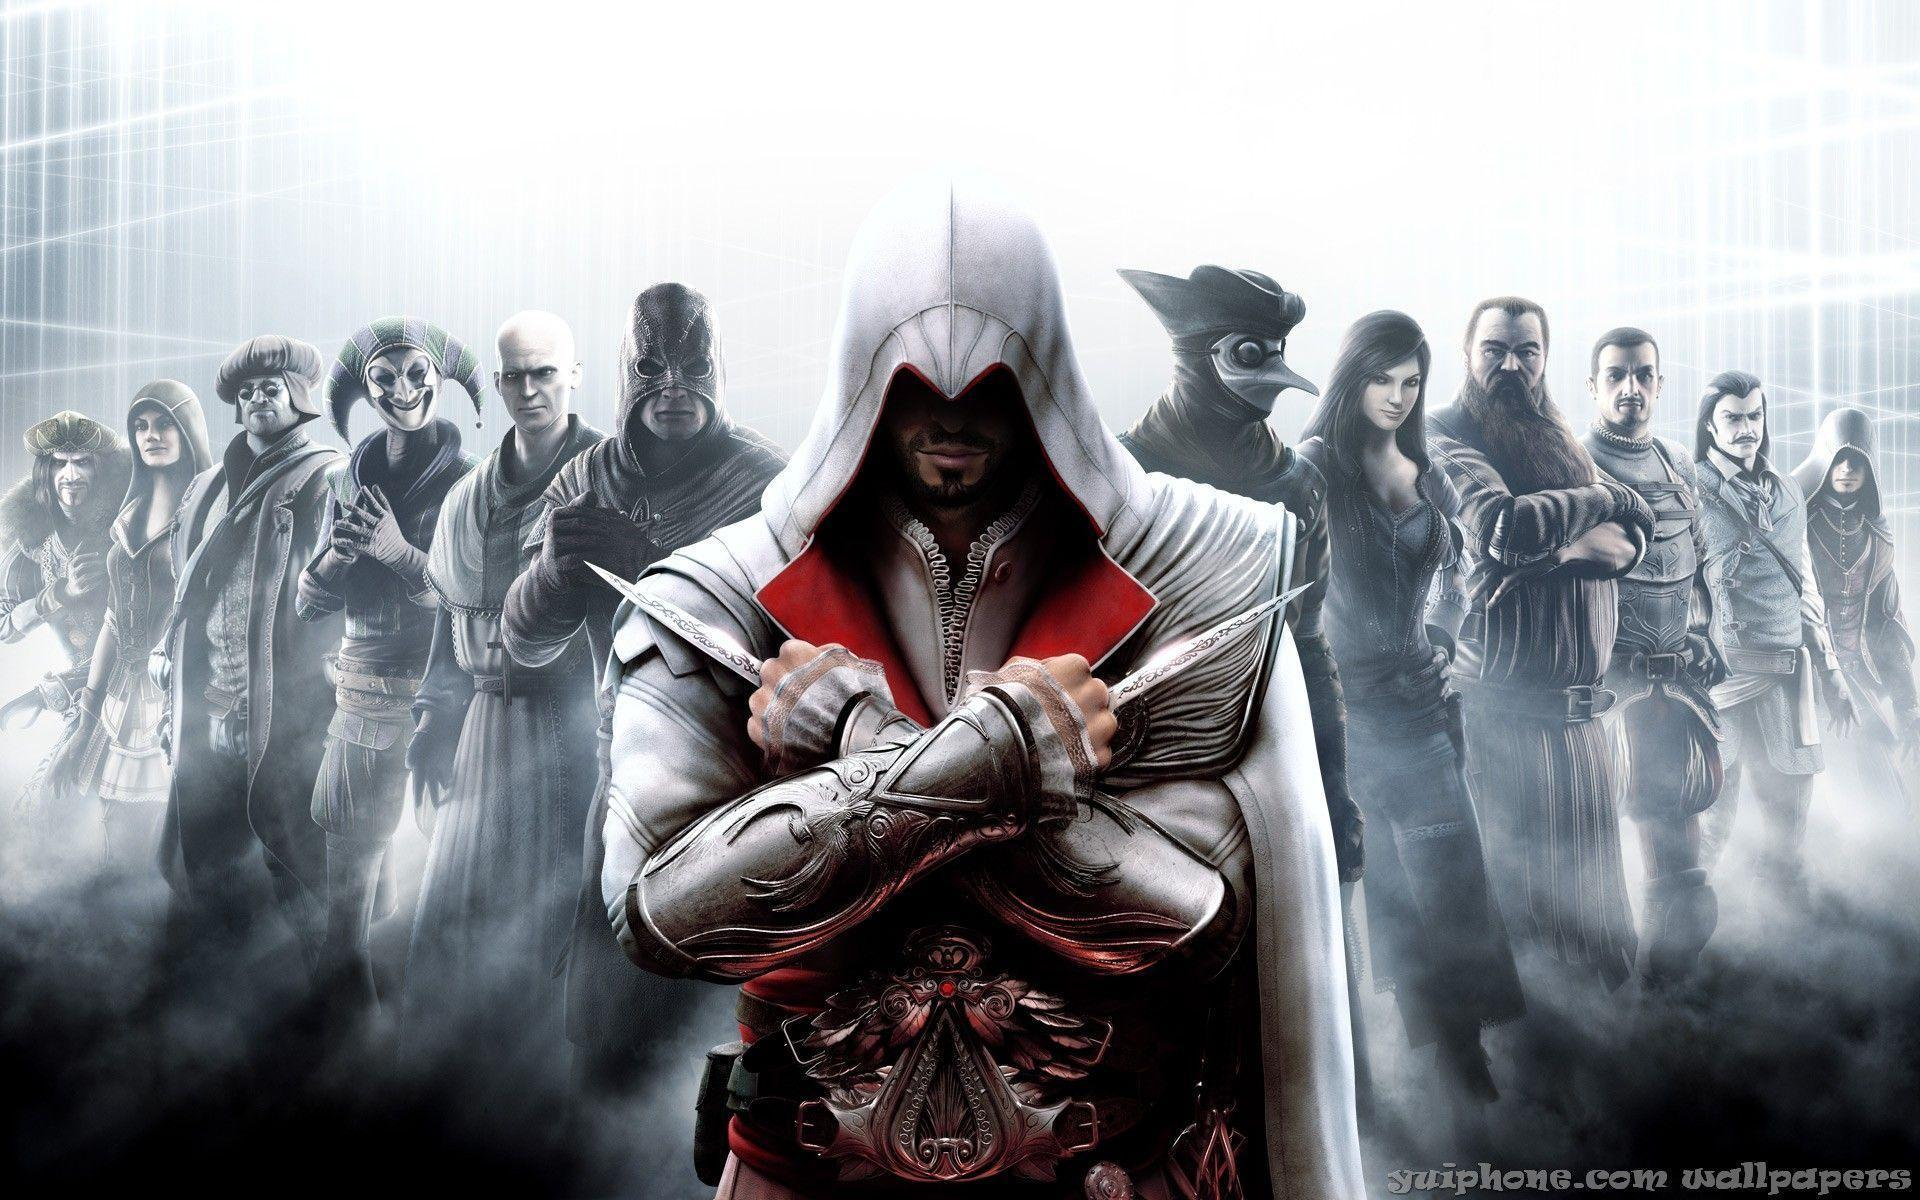 assassin's creed: brotherhood wallpapers - wallpaper cave